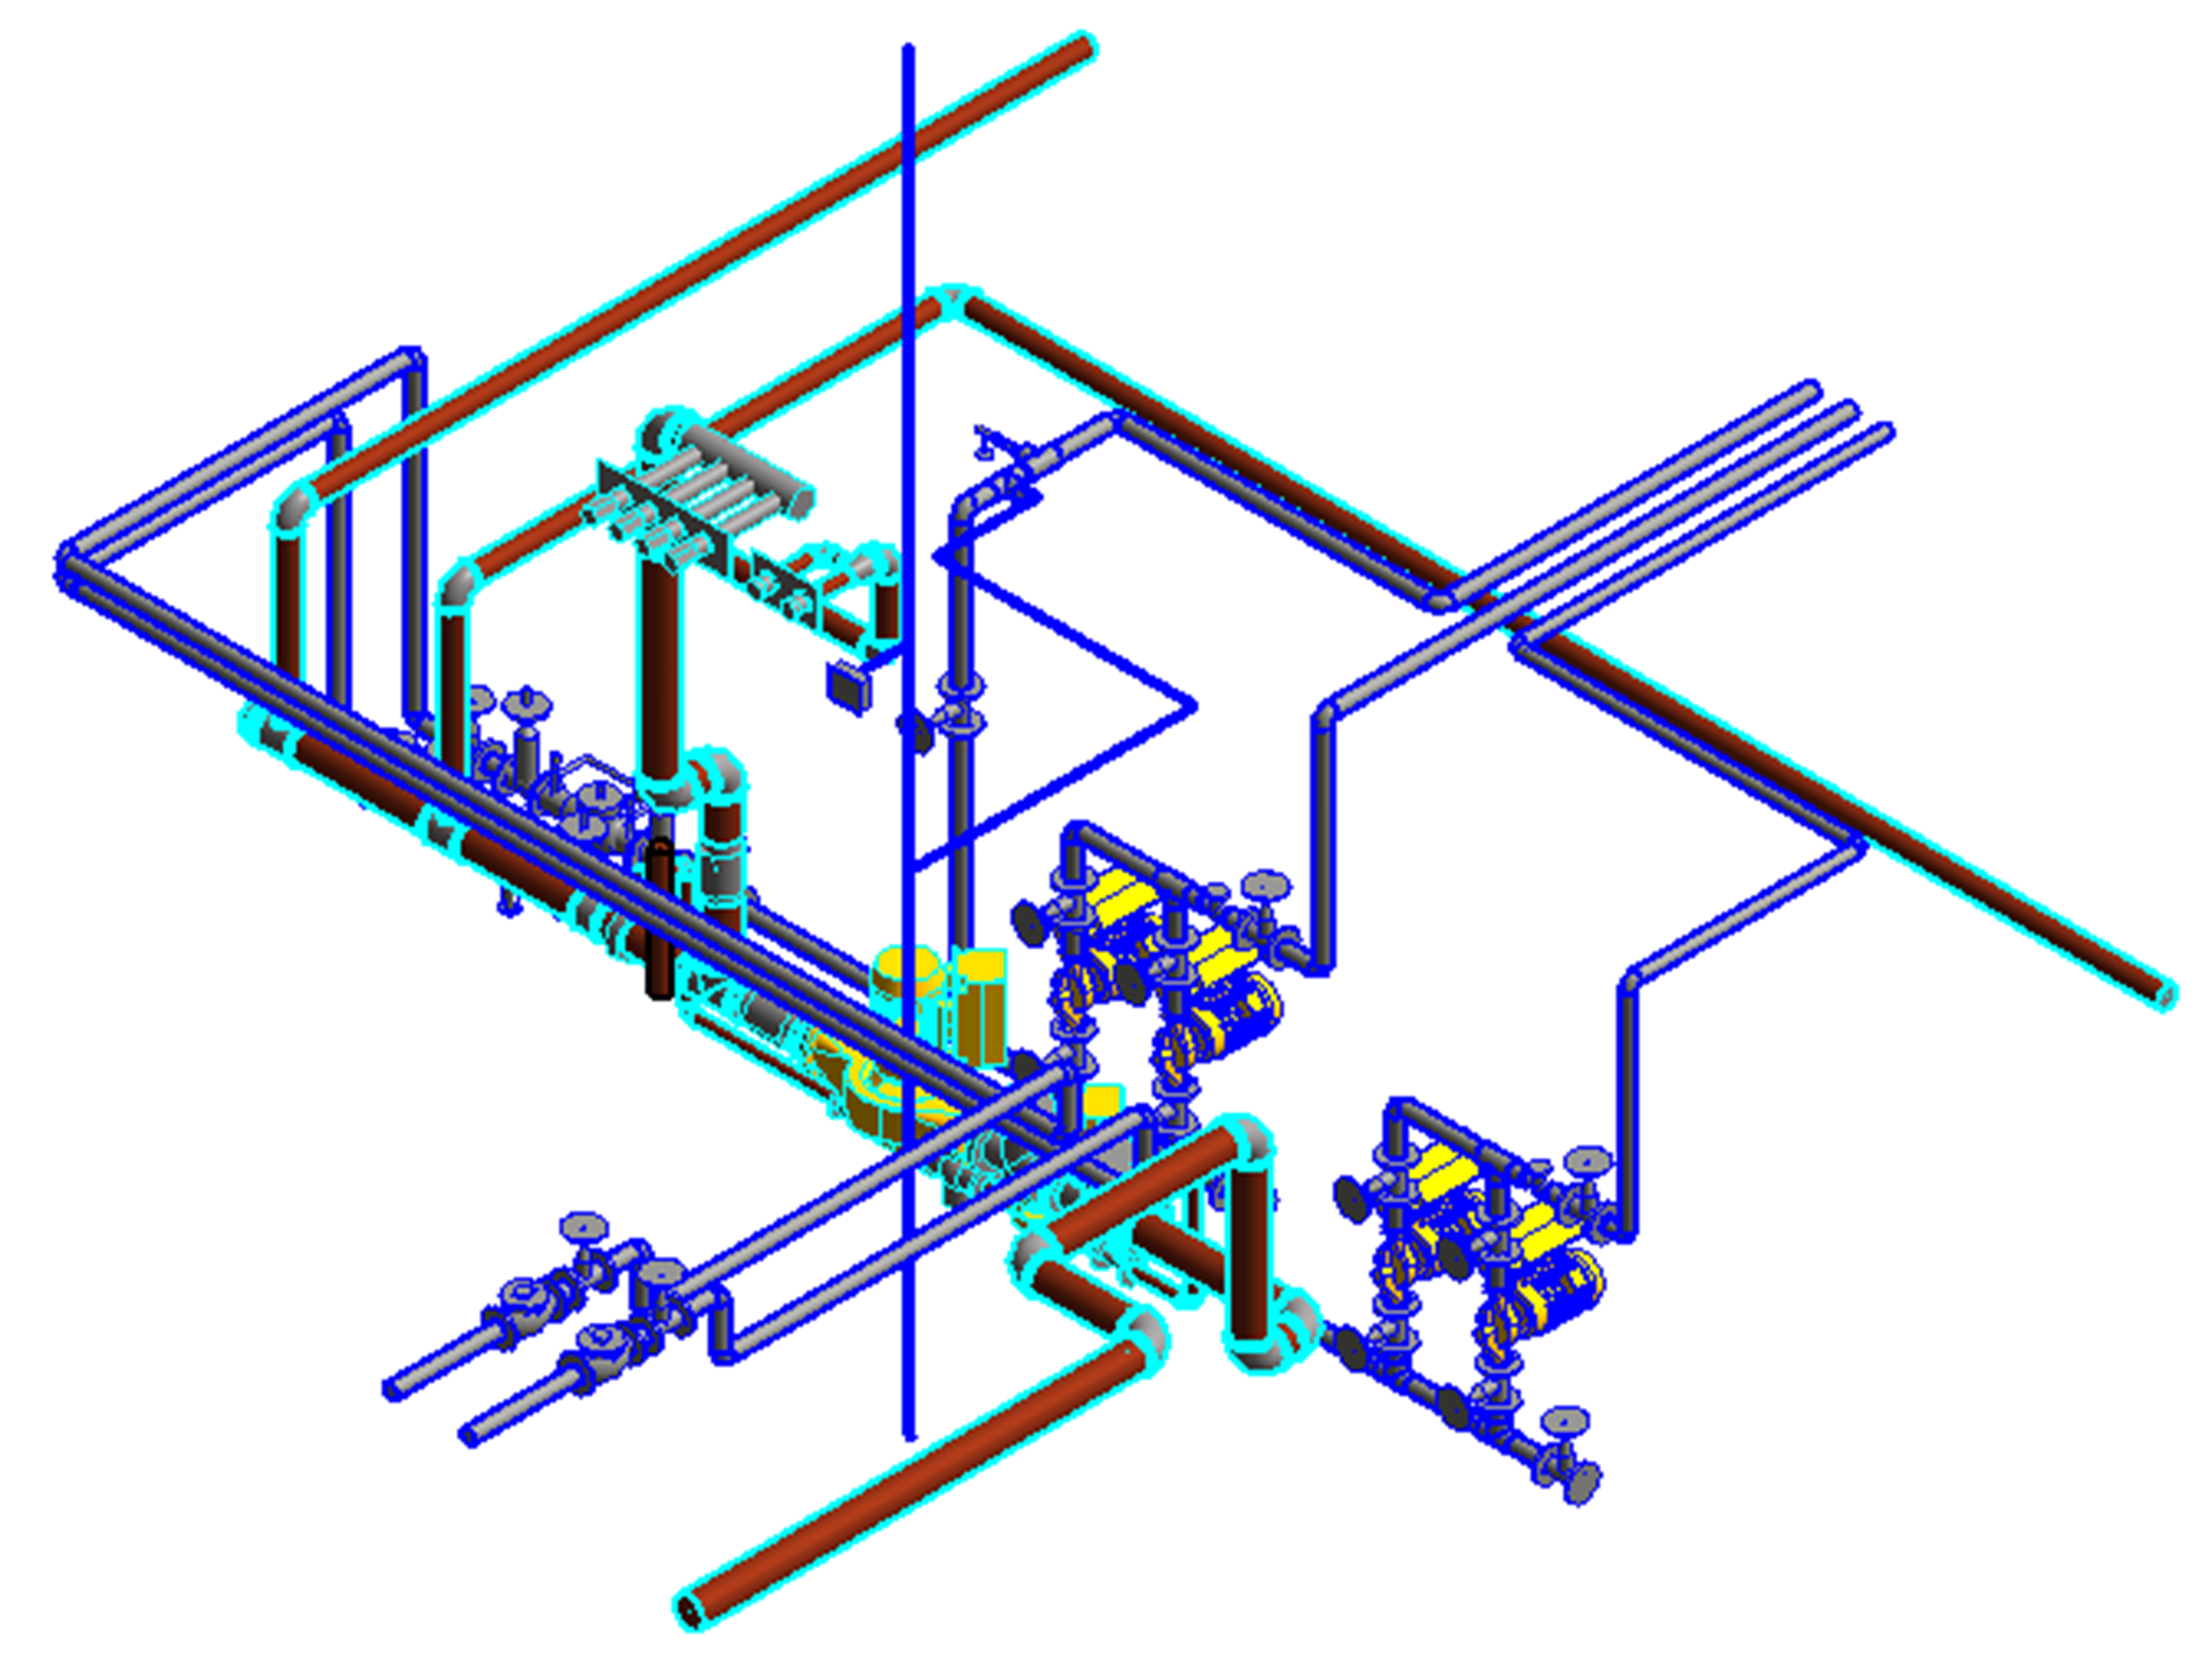 Plumbing Drawing | Free download best Plumbing Drawing on ClipArtMag com